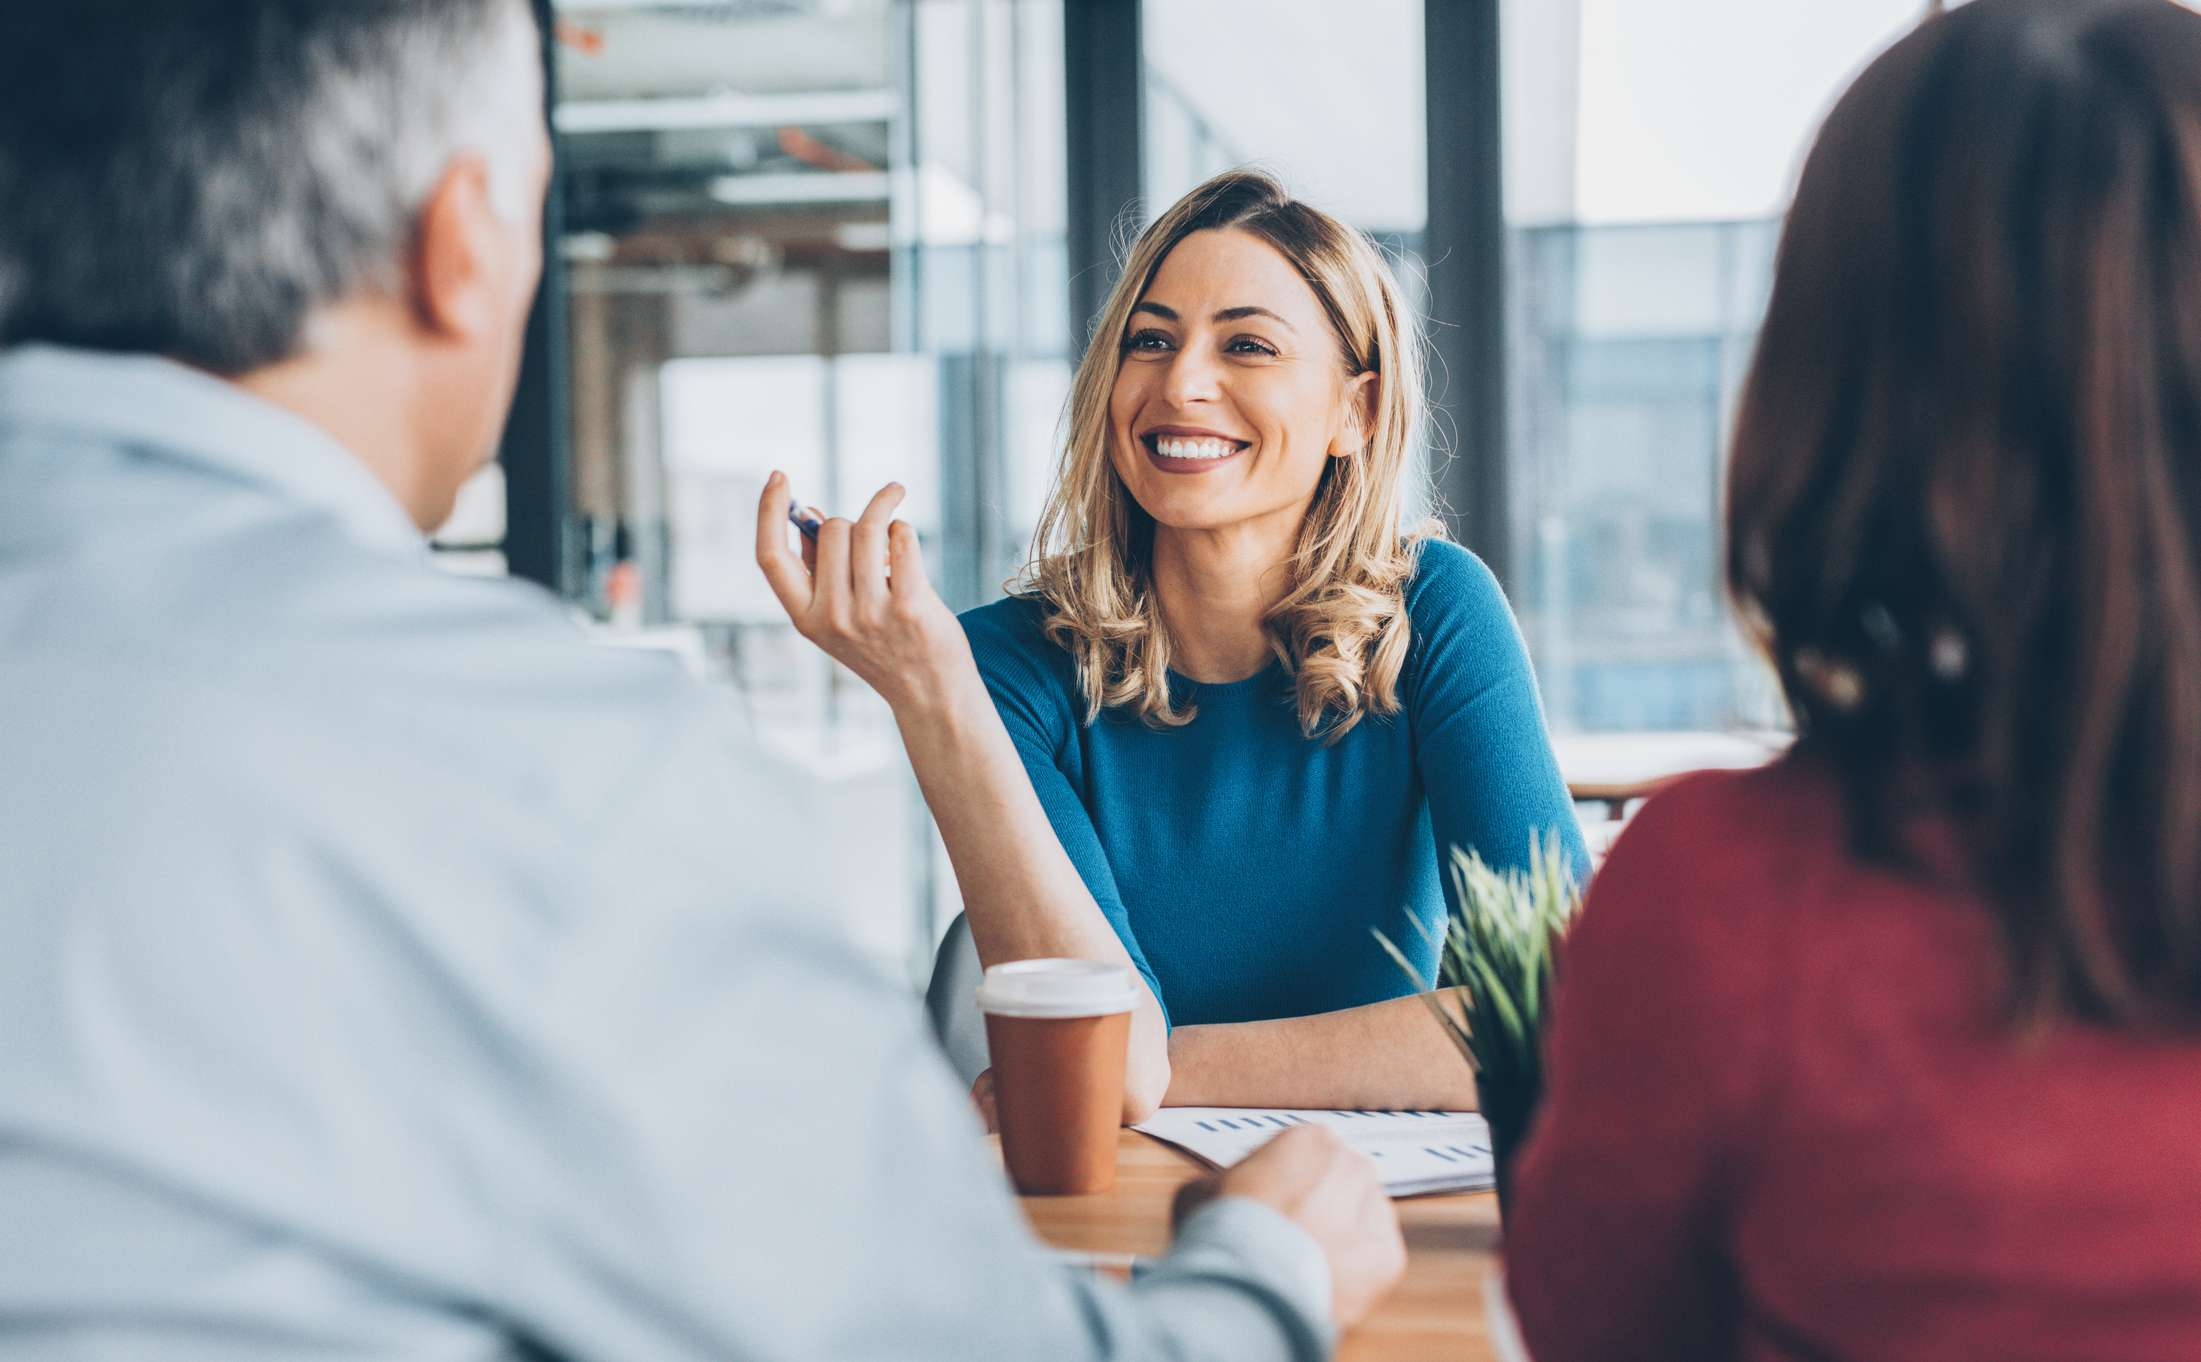 Smiling businesswoman talks to man and woman across desk.